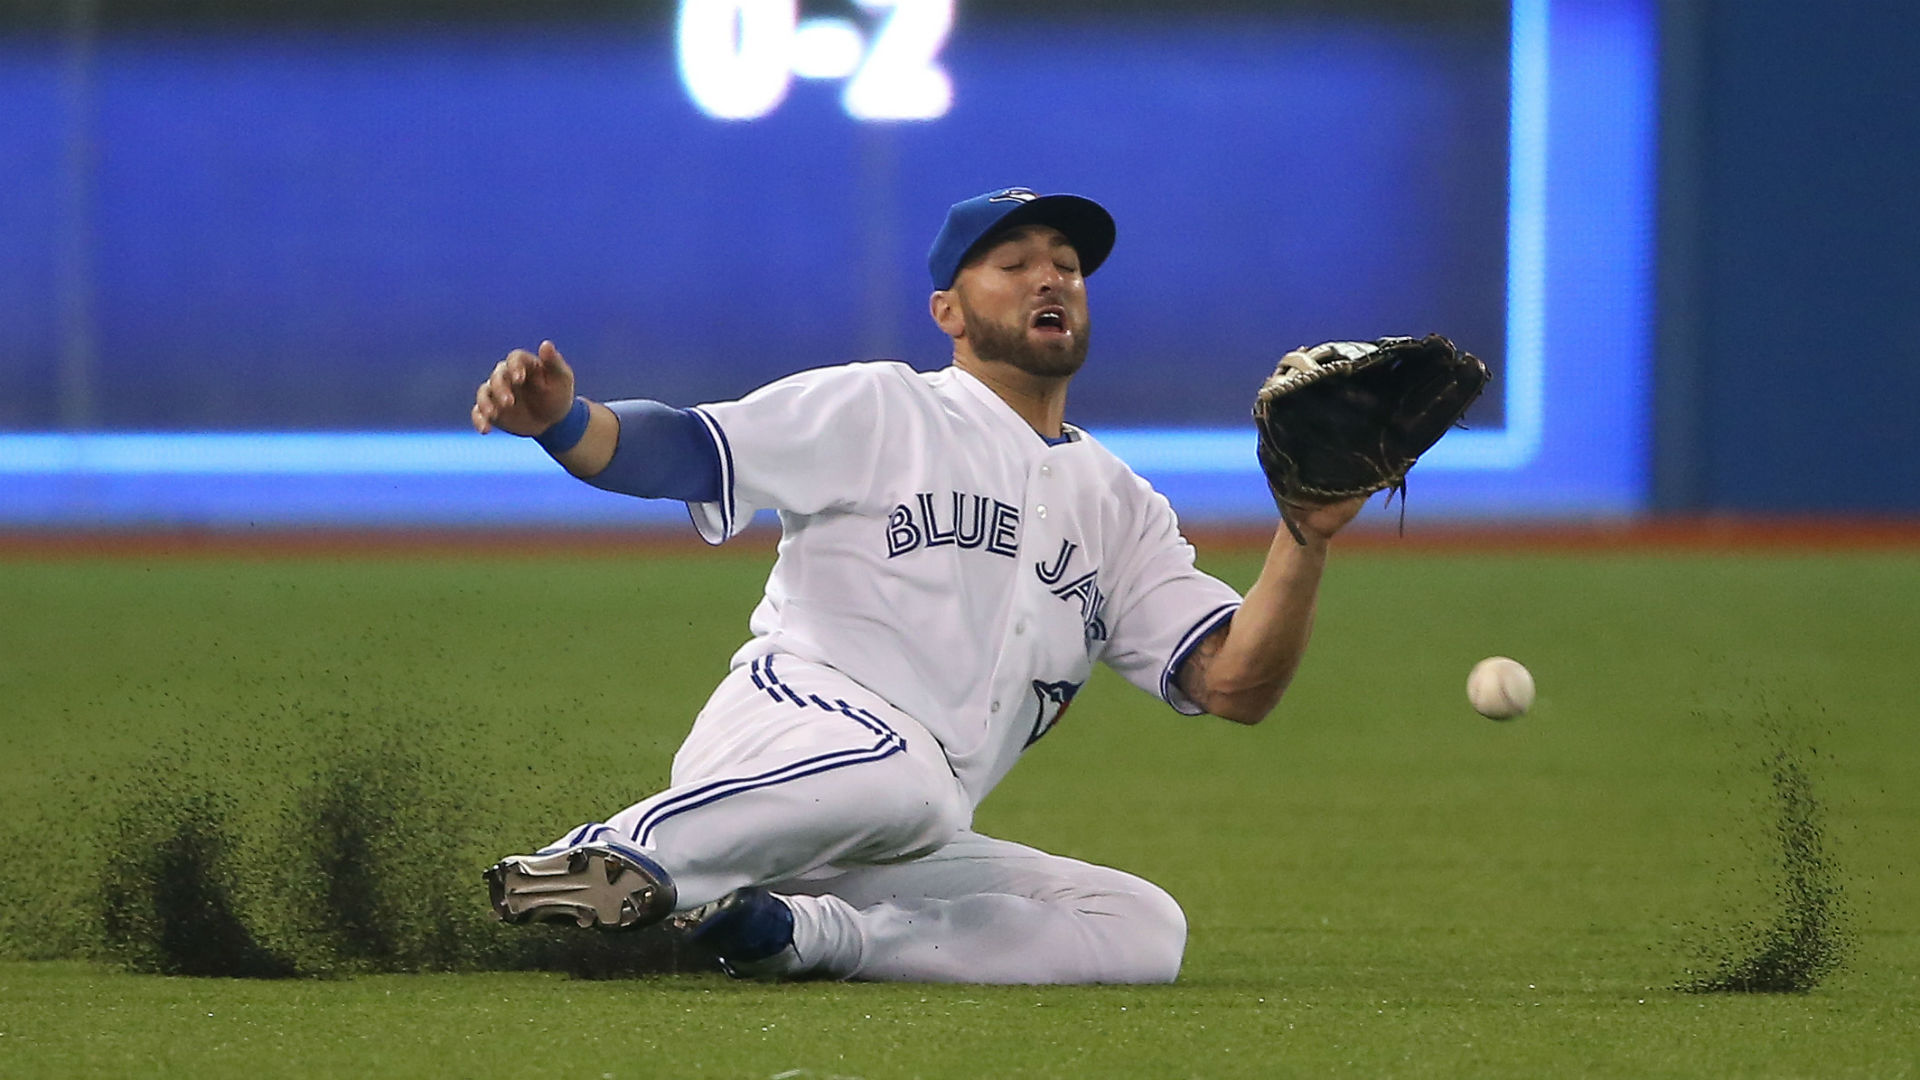 Blue-Jays-04242015-US-News-Getty-FTR